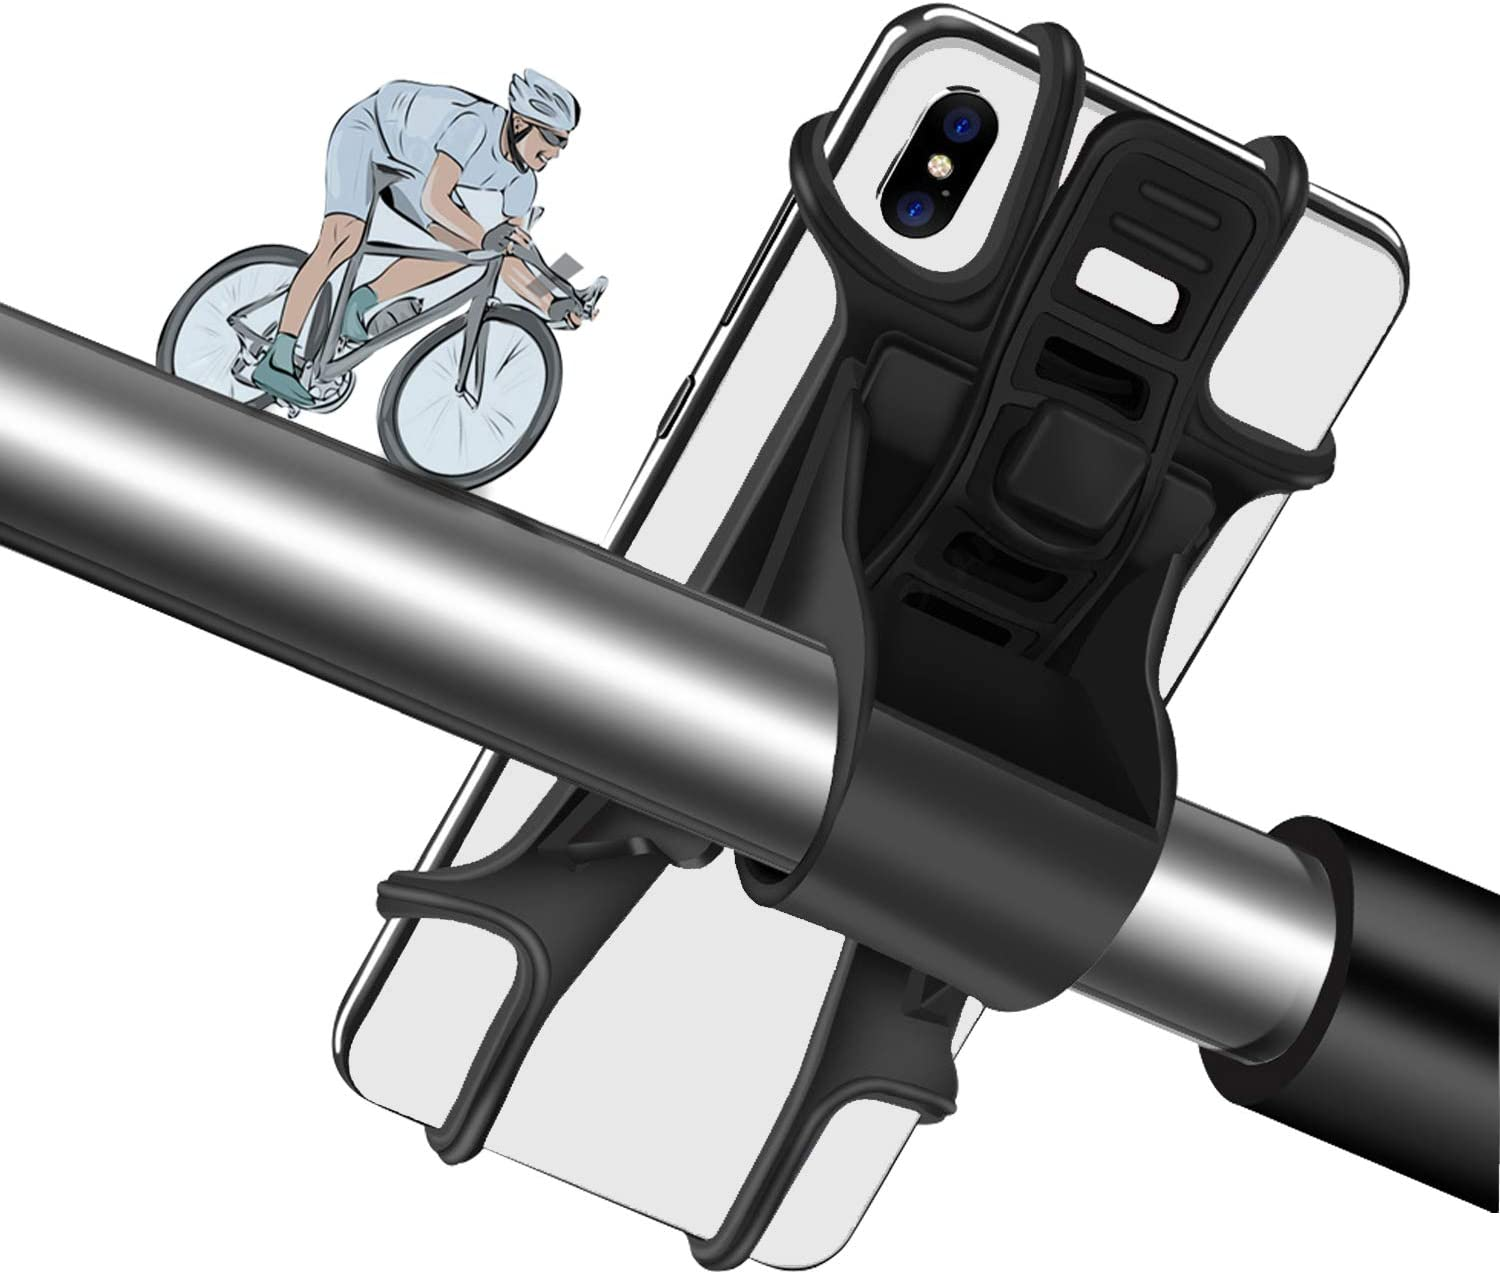 Bike Phone Mount, Removable Silicone Phone Holder for Bike, Motorcycle, Shopping Cart & Suitable for 4 to 6.5 Inch Smartphones and GPS Devices, hehuangTech Bike Phone Holder.